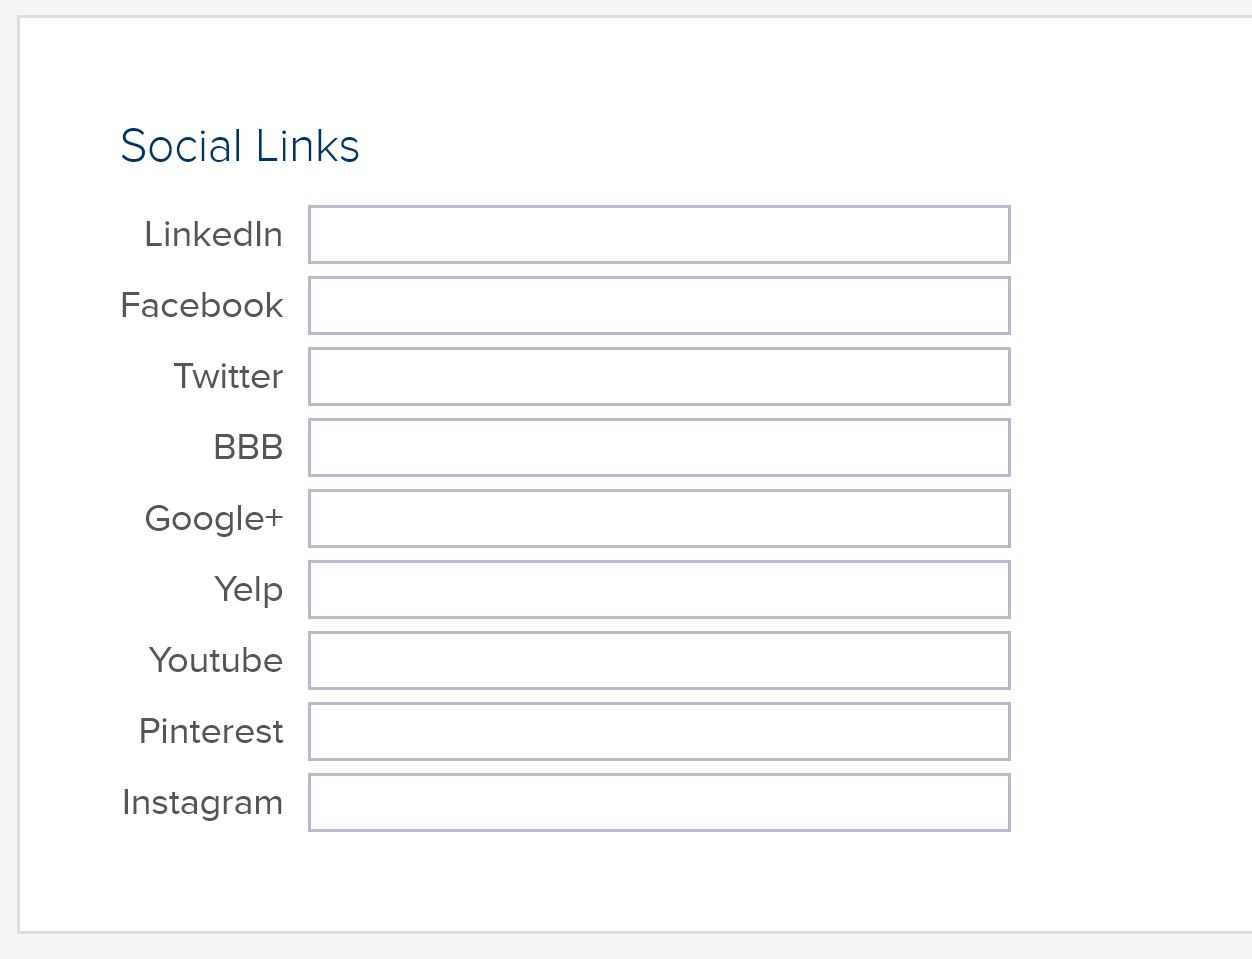 """Link your Social Media - Once logged in, an Acworth Business Association can scroll down the page until they reach the """"Social Links"""" Box. This box allows users to add in their company Social Media profiles for contact & sharing purposes."""